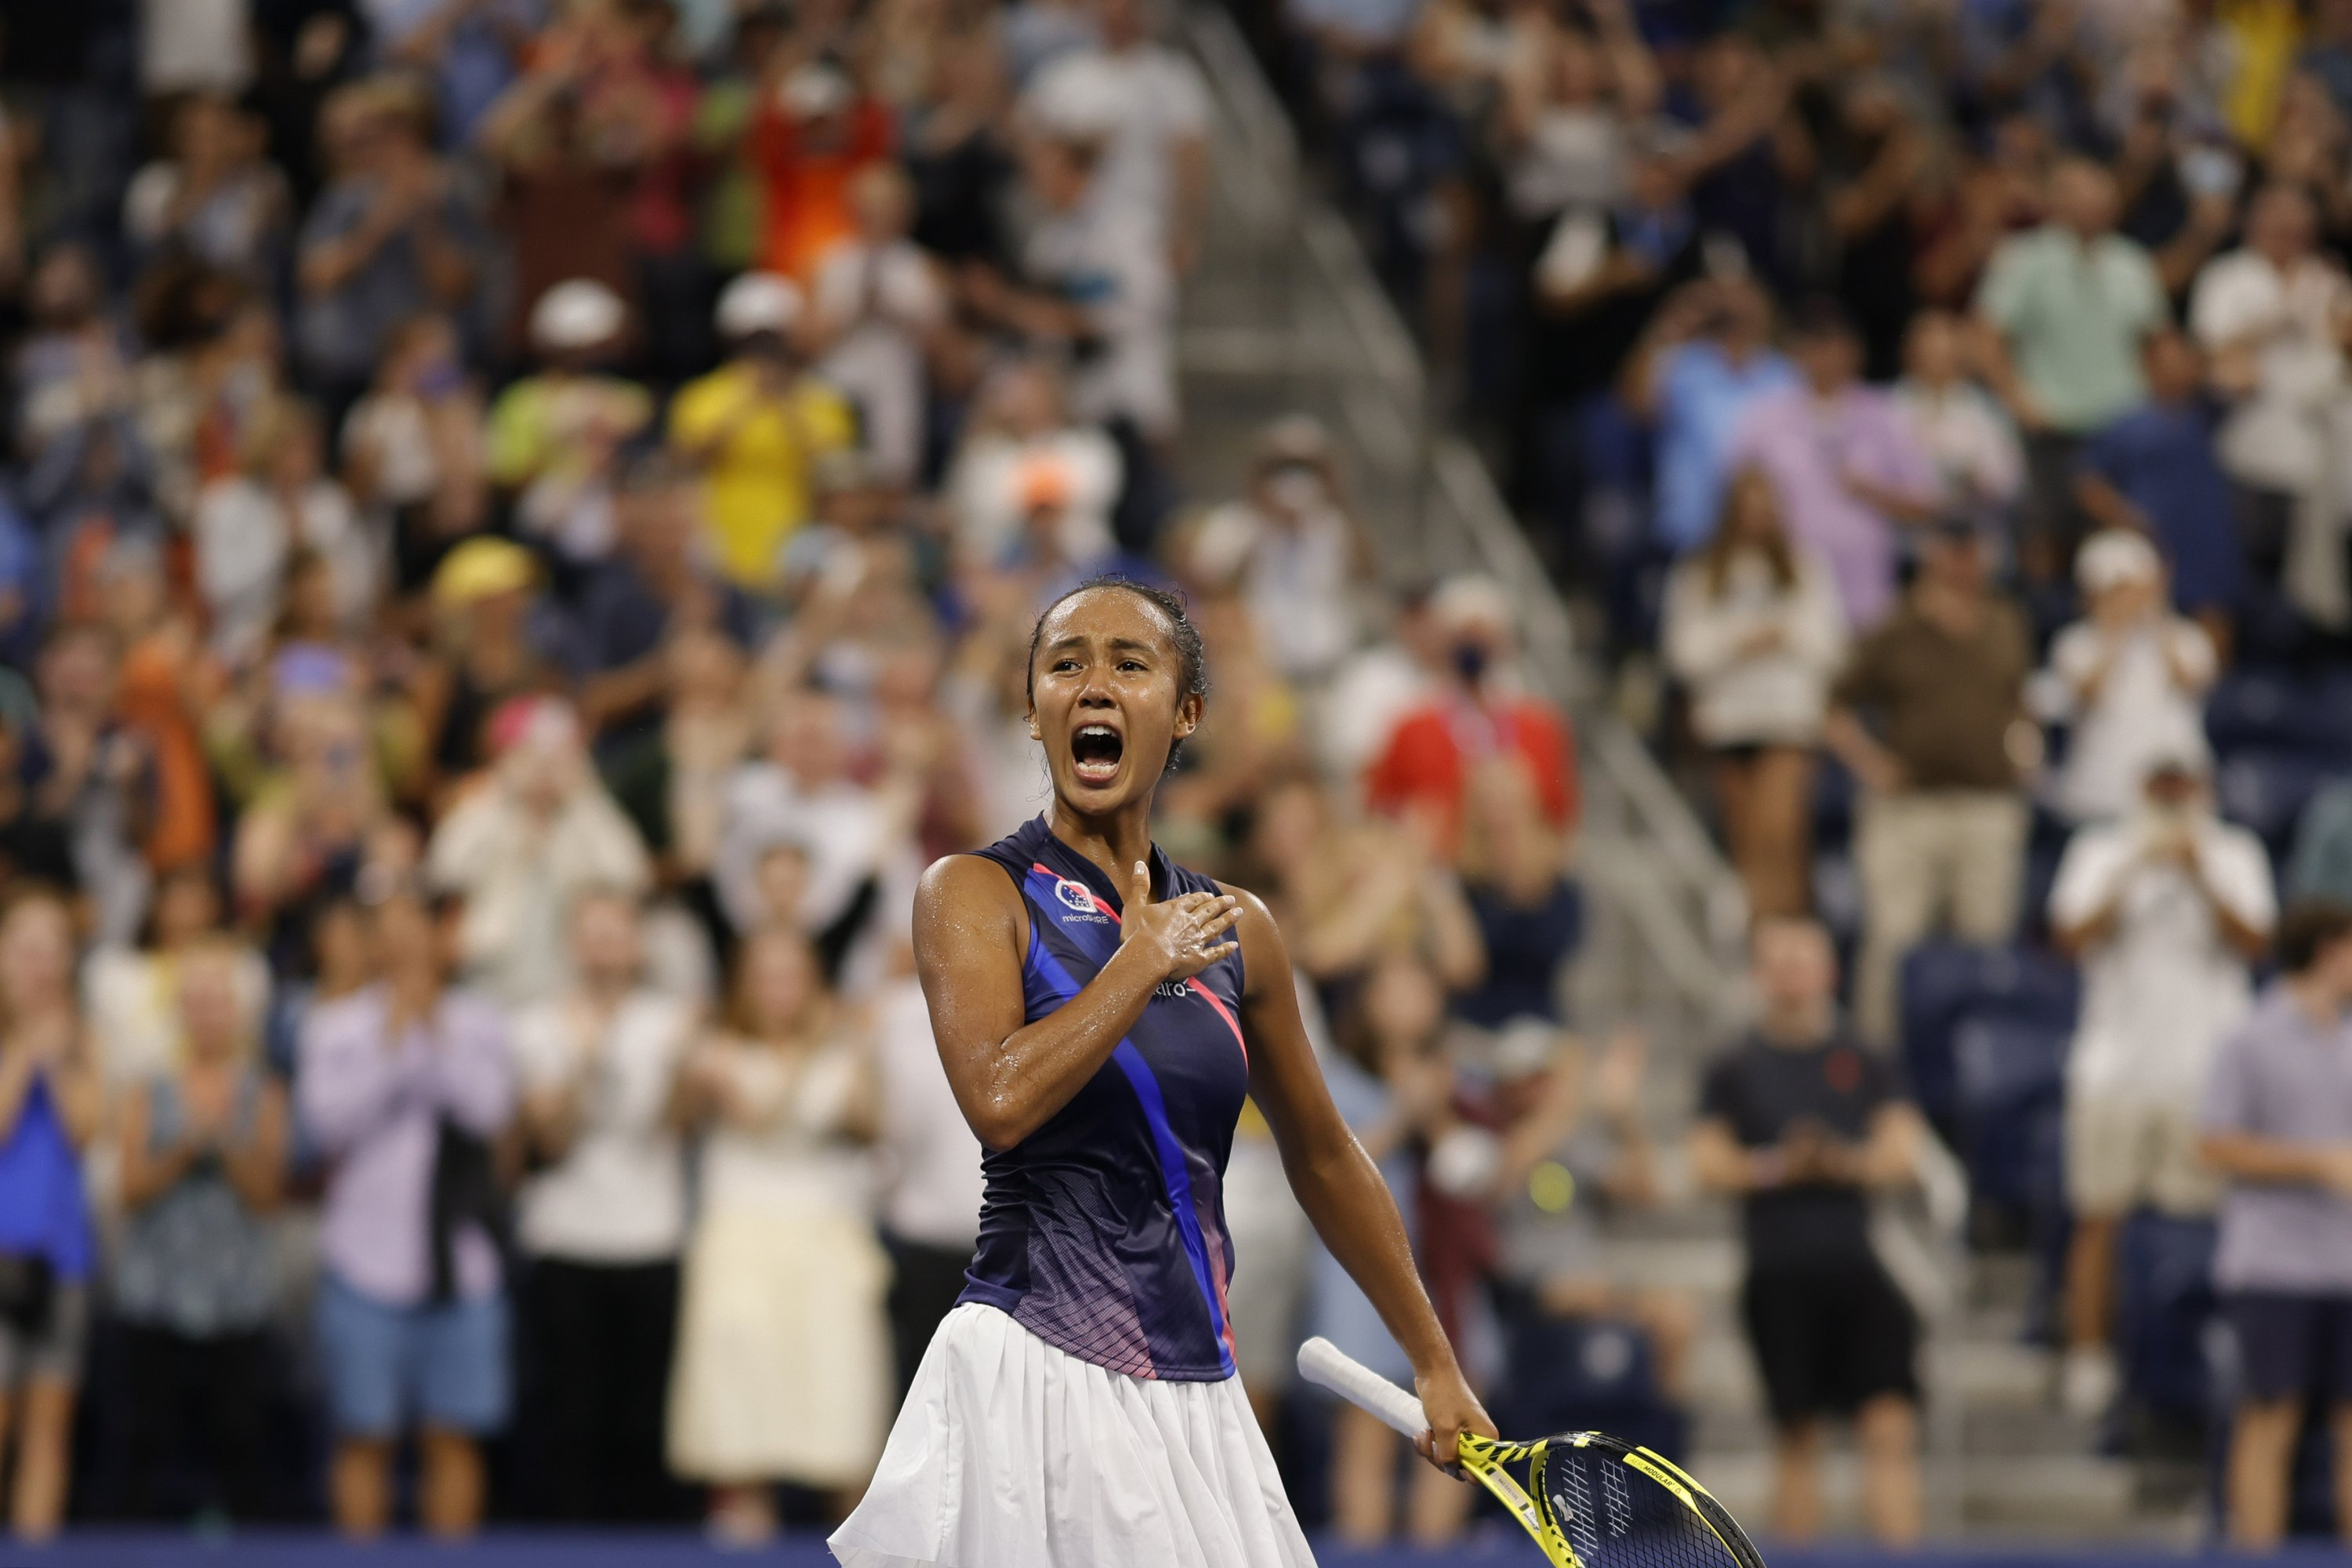 Canada's Leylah Fernandez celebrates after match point against Germany's Angelique Kerber of Germany during their 2021 U.S. Open women's singles fourth-round match, New York, U.S., Sept. 5, 2021.